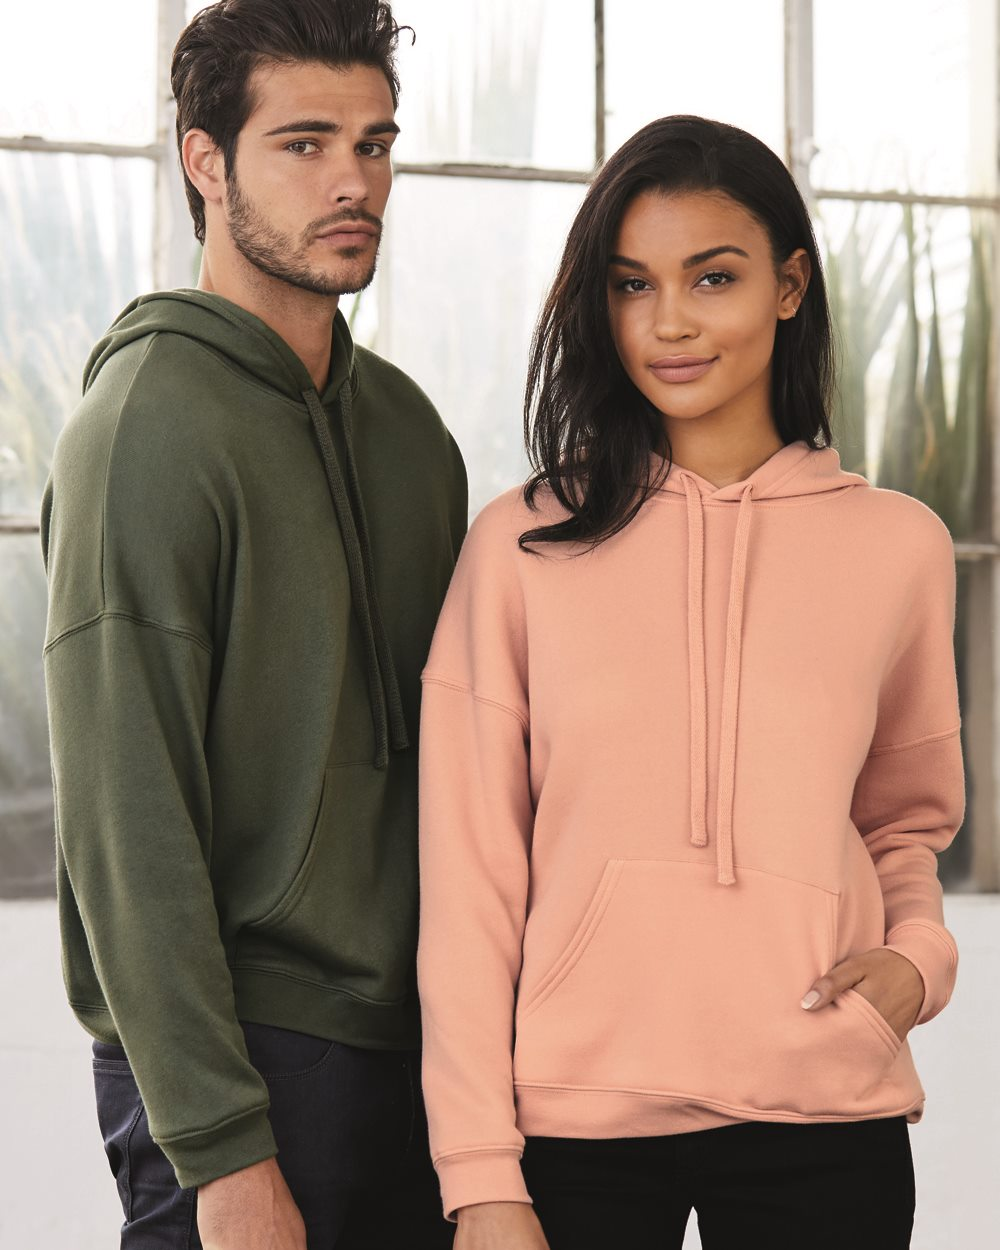 Bella + Canvas Unisex Sponge Fleece Pullover Sweatshirt